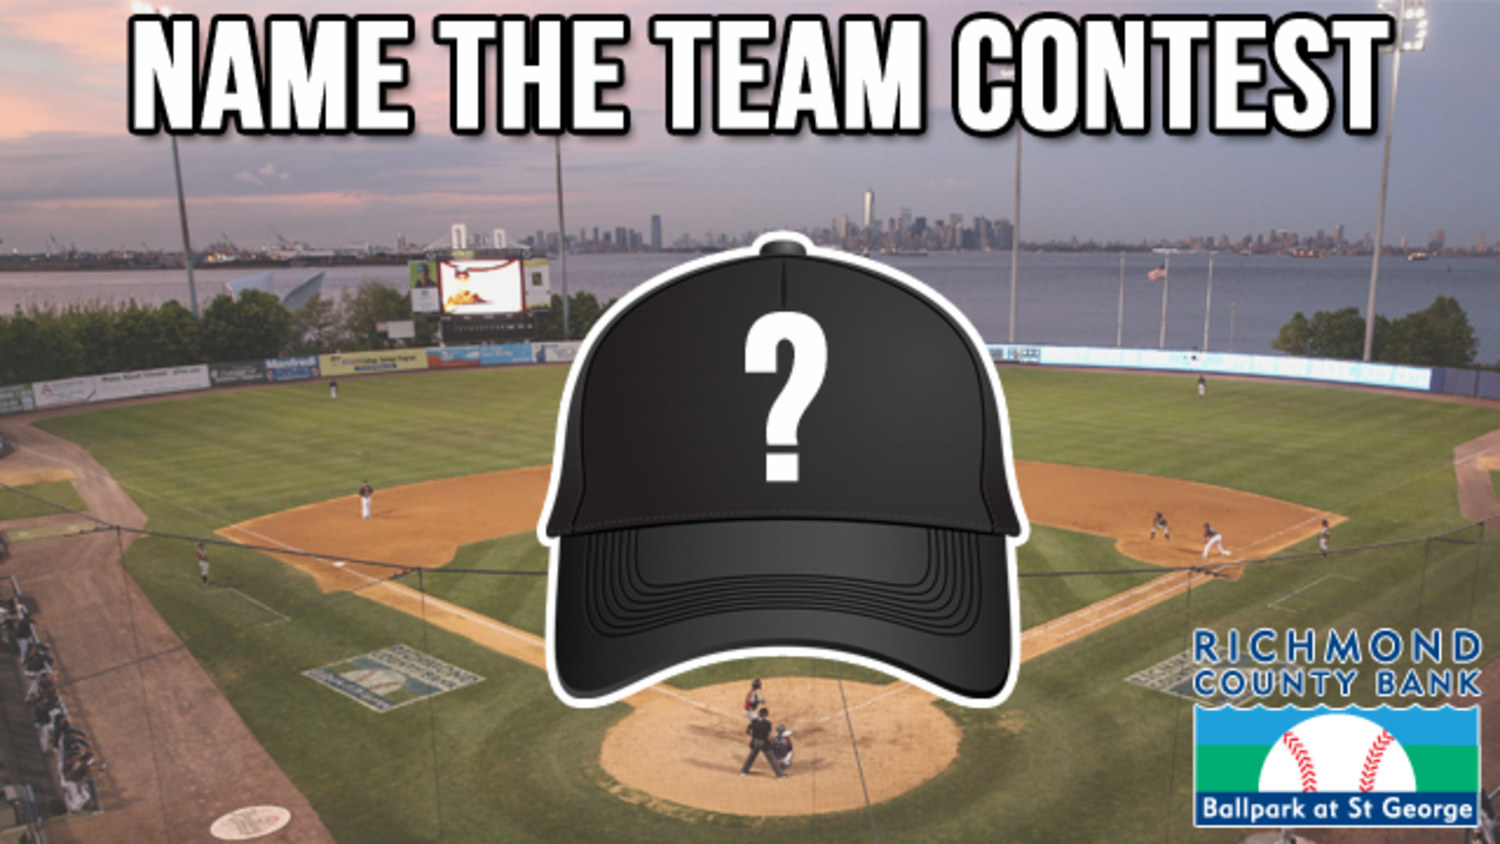 Staten Island Yankees Name the Team Contest